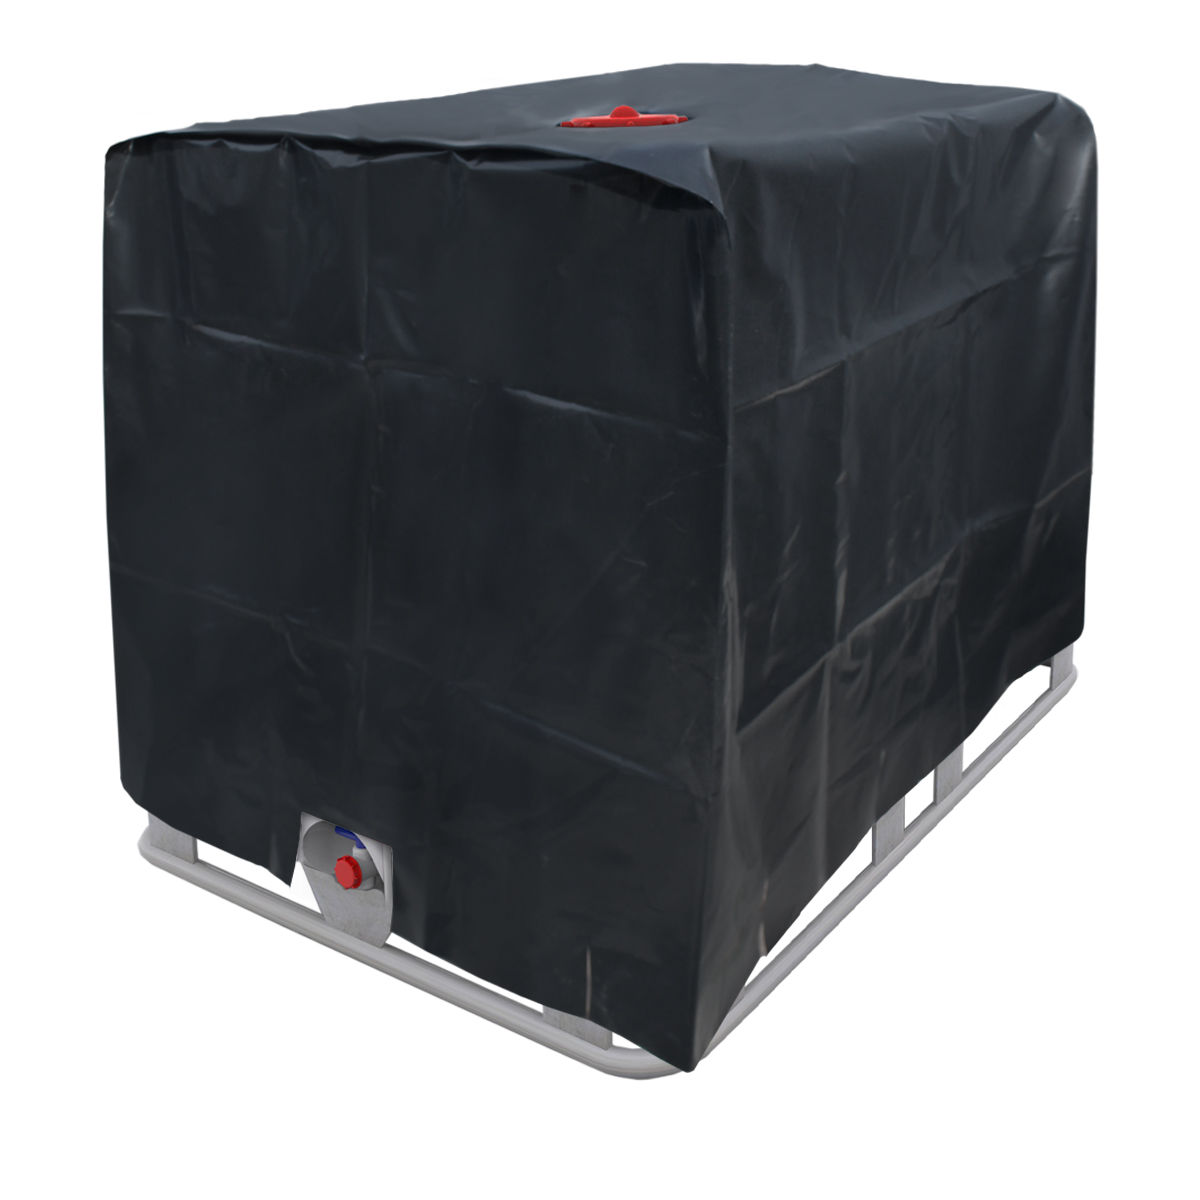 cover cases protection for ibc tank water tank 1000l container insulating foil. Black Bedroom Furniture Sets. Home Design Ideas